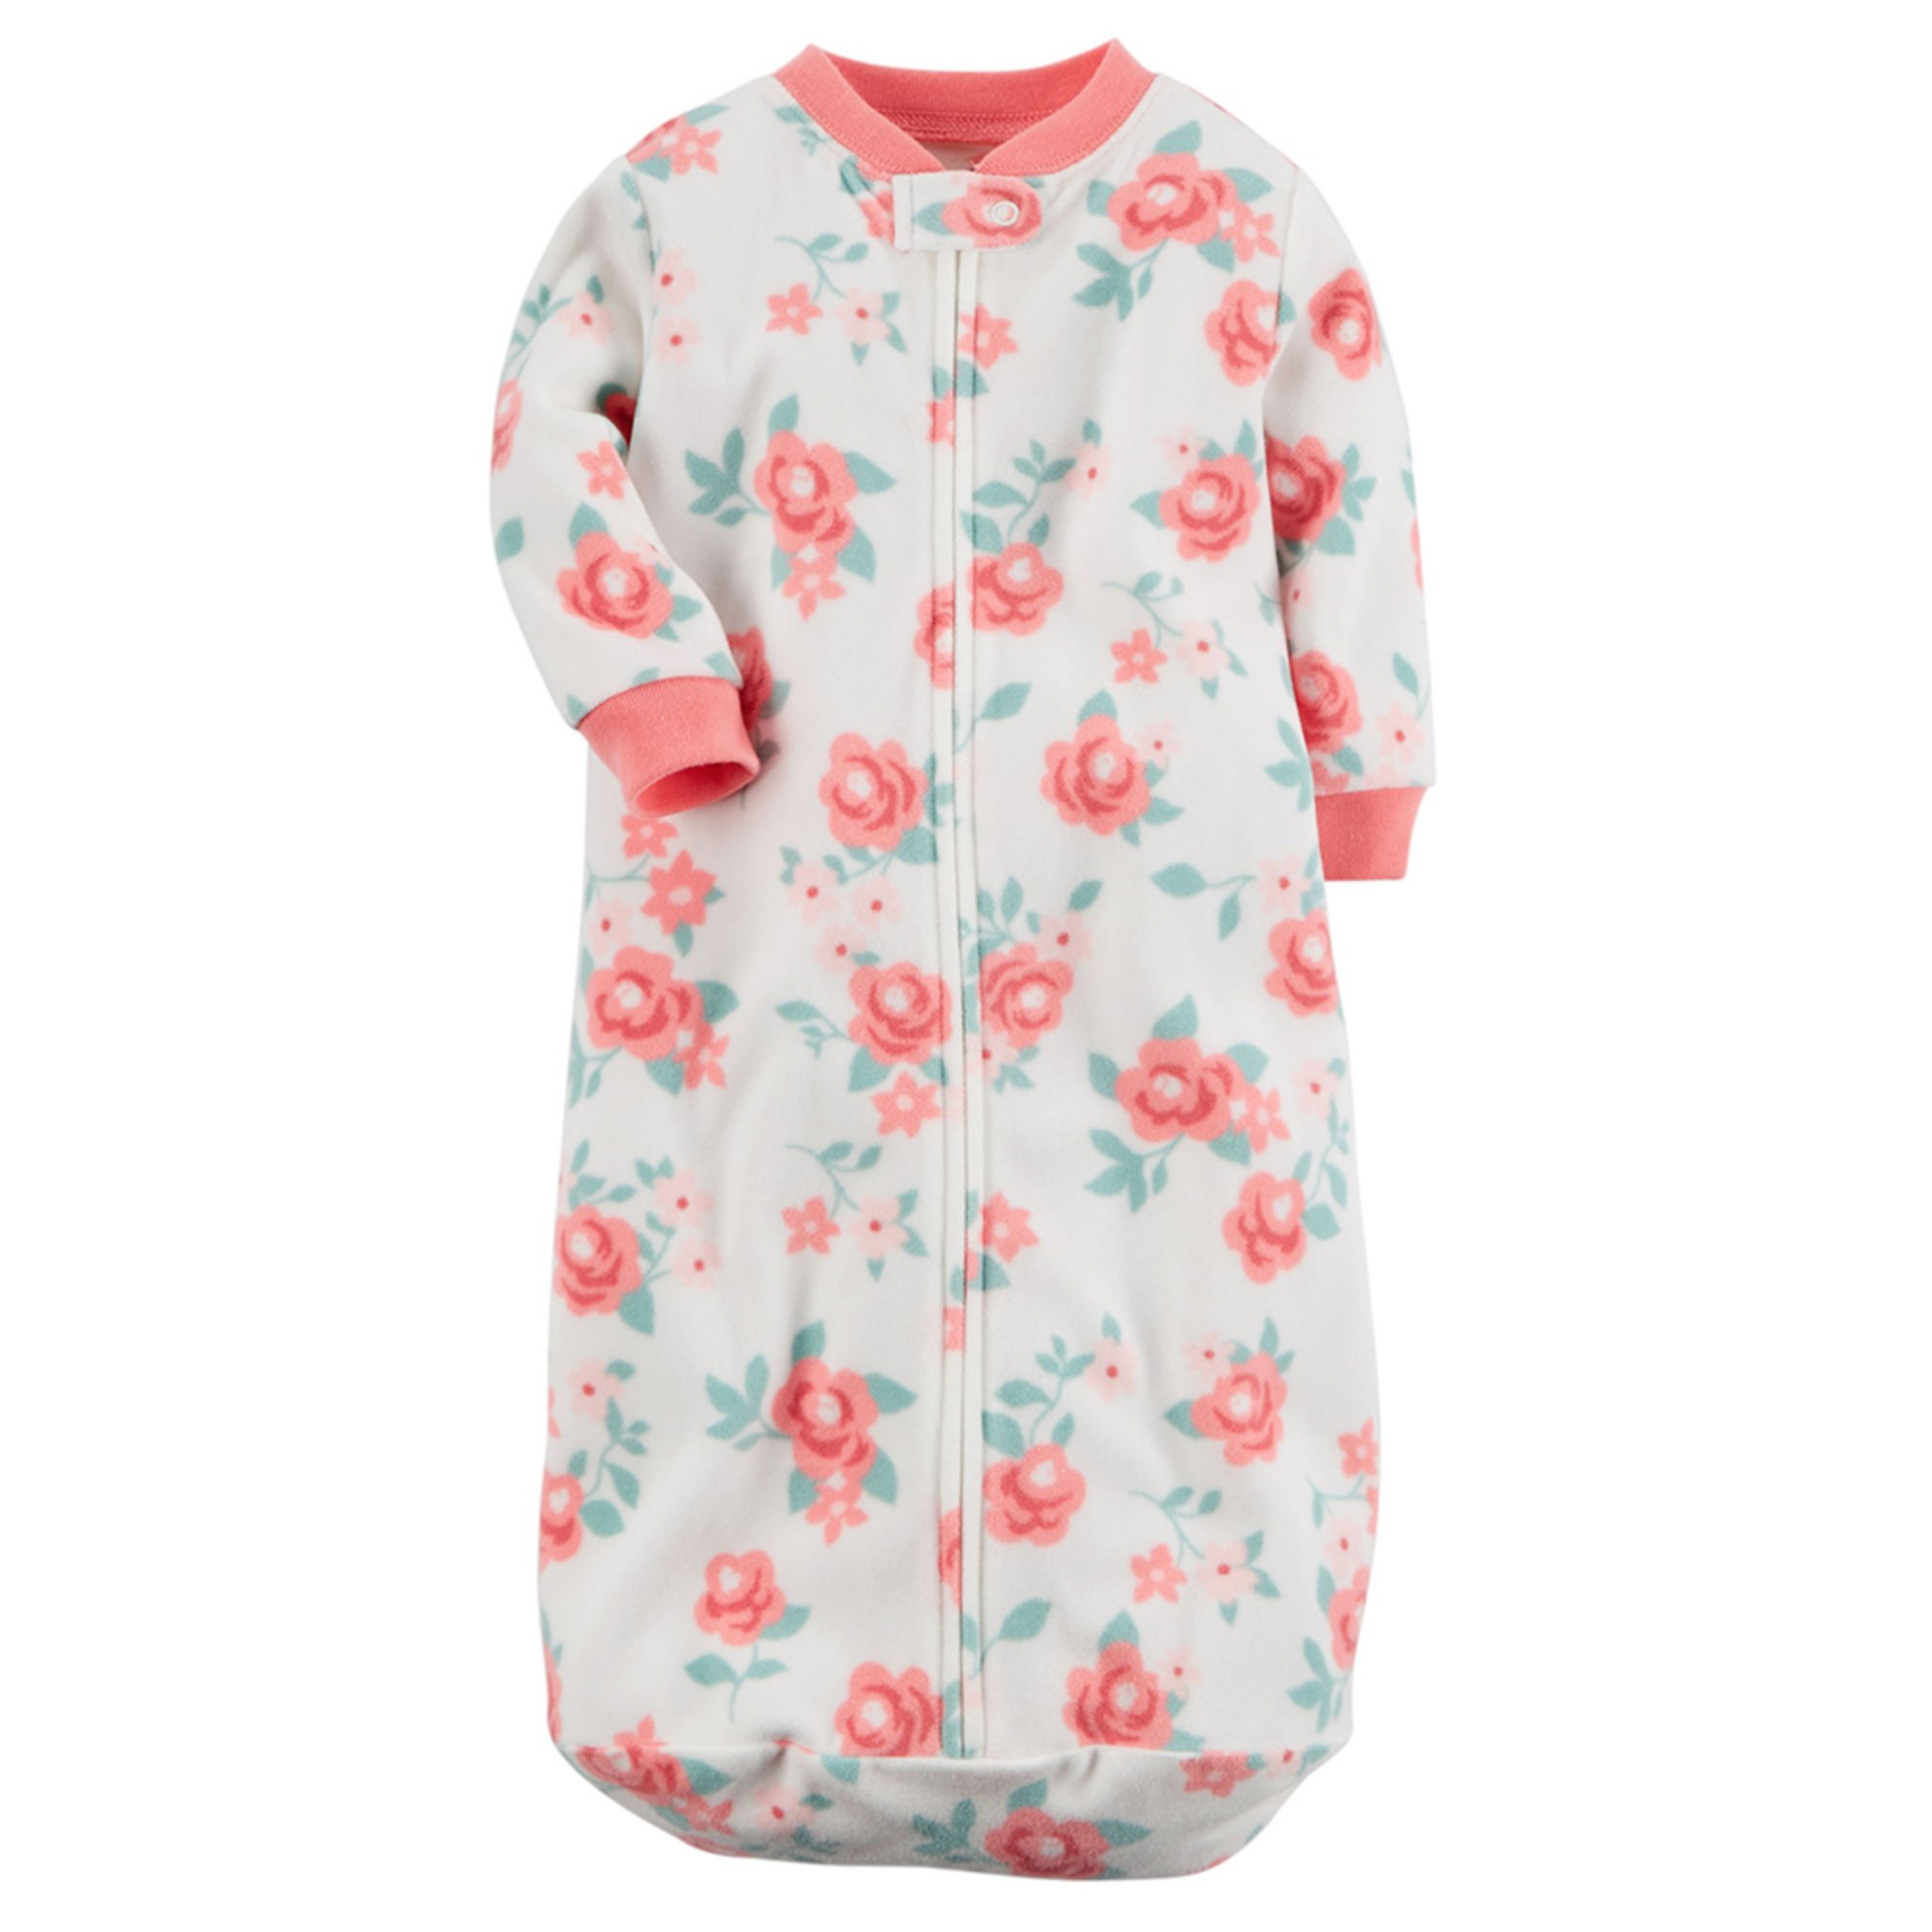 So no matter if you are looking to buy newborn baby clothes, sleepsuits or nightwear you can ensure you buy the correct baby clothing based on the baby's weight or height. If you are looking to measure your babies feet, check out the mothercare shoe sizing guide.